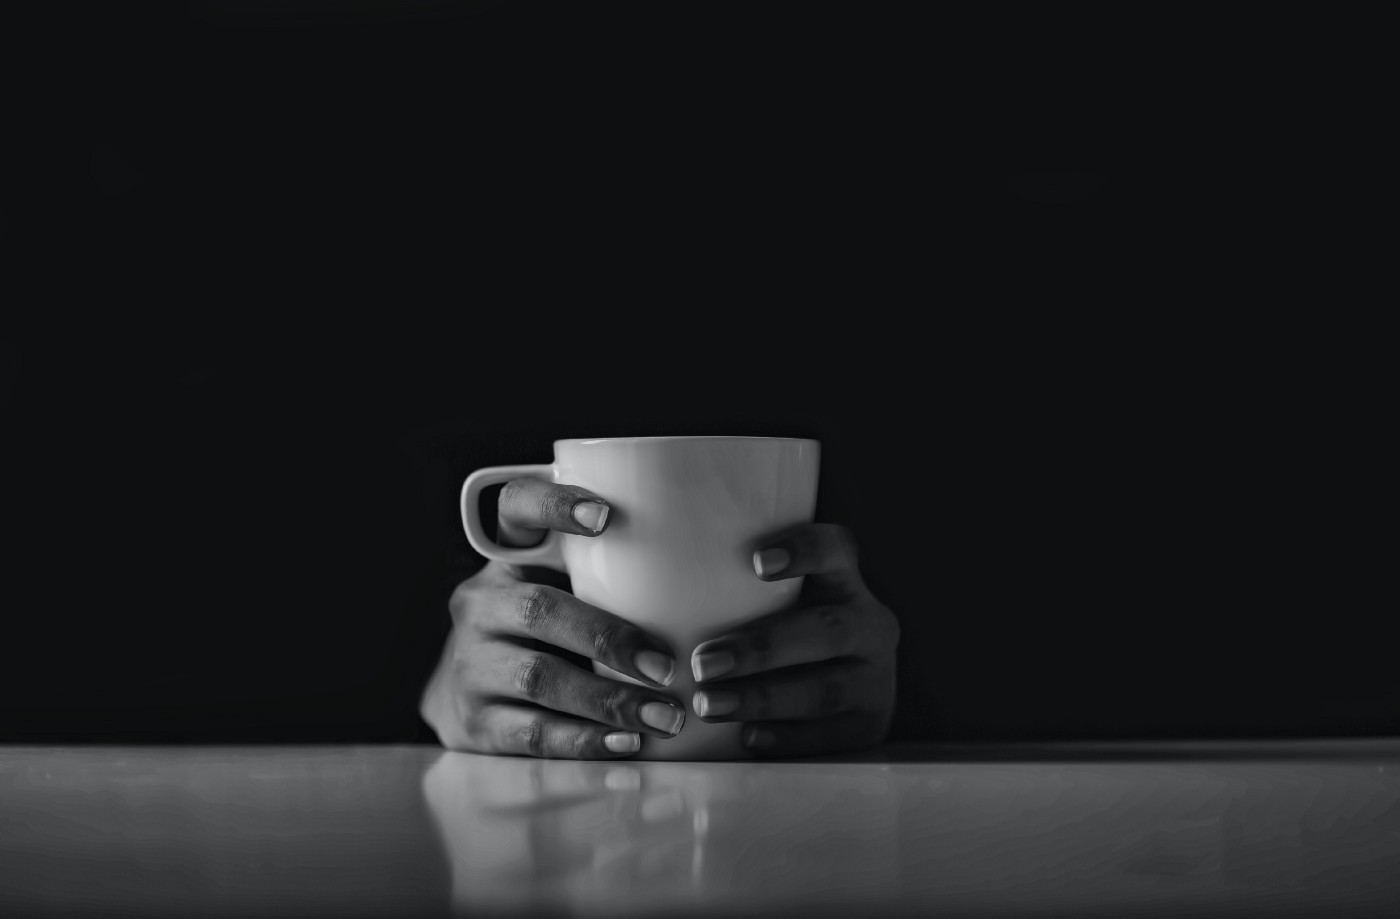 Two hands holding a coffee mug against a black background